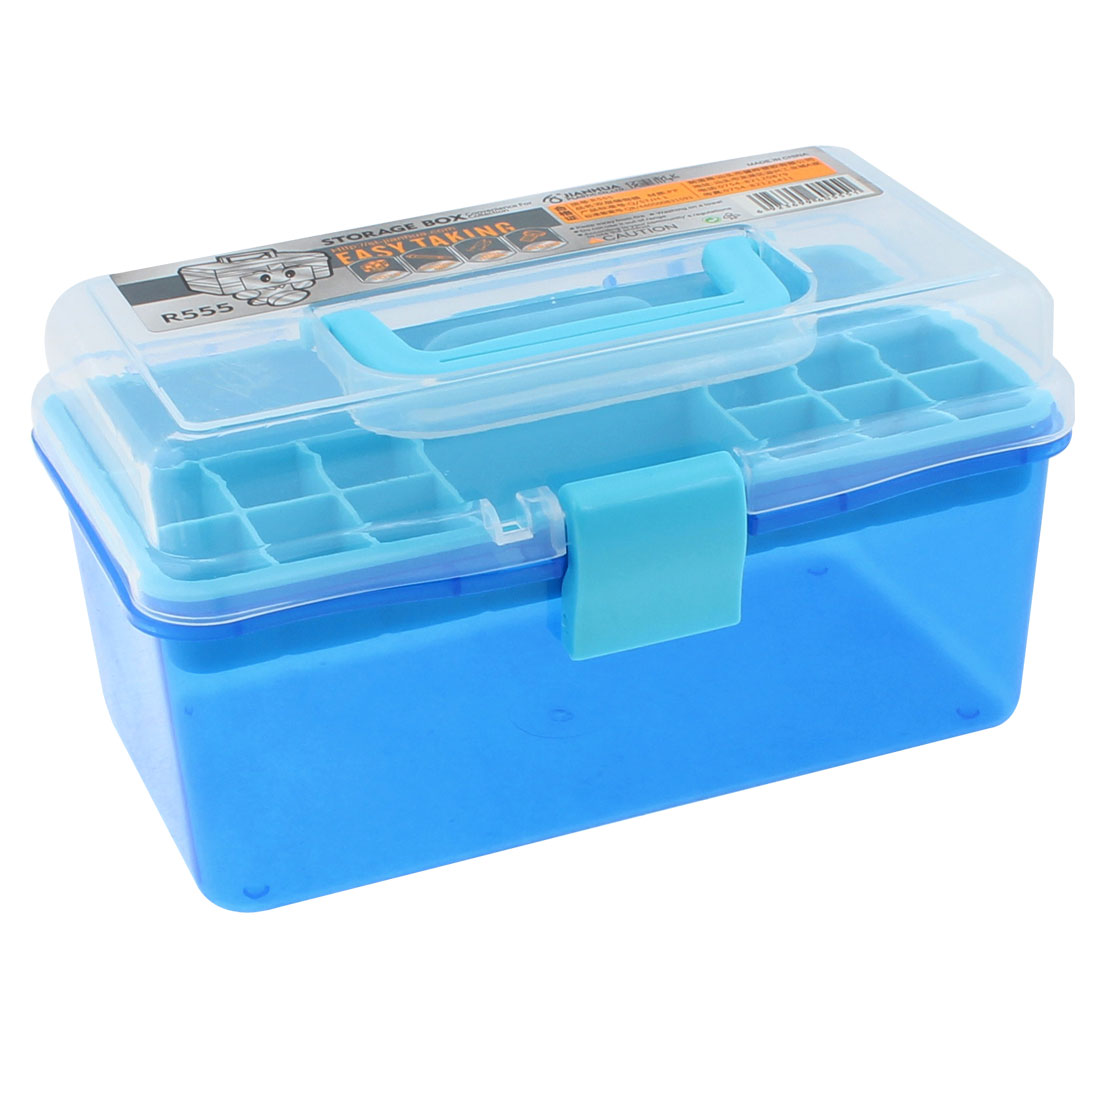 Plastic 2 Layers Nail Art Craft Makeup Fish Hook Screws Storage Box Case Blue